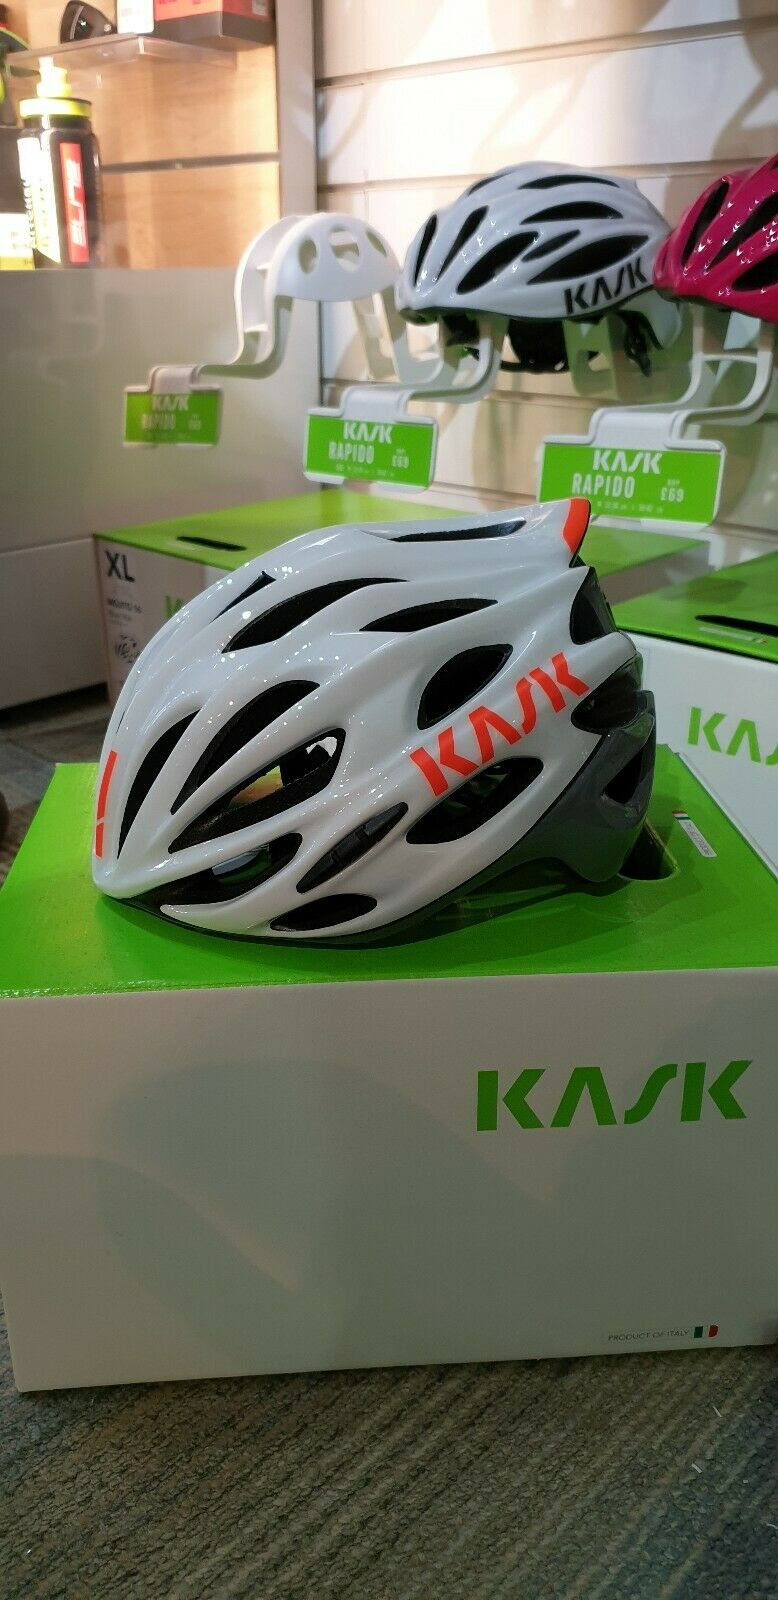 White // Pink New KASK Mojito Road Bike Bicycle Cycling Riding Helmet